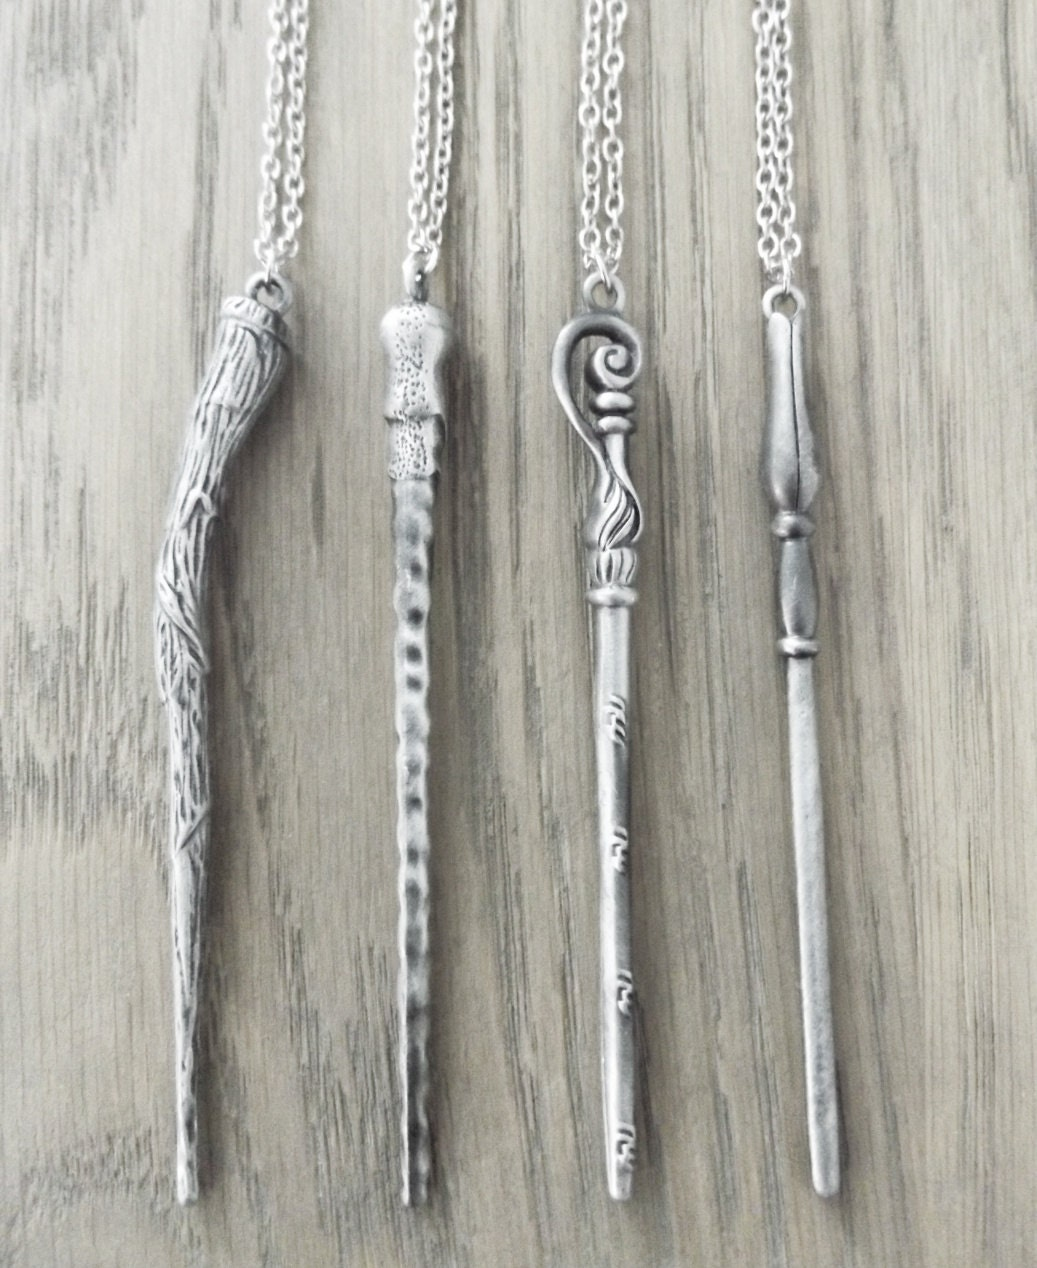 Harry Potter Wand Necklaces  Bellatrix Lestrange Ron Weasley Fleur Delacour and Luna Lovegood